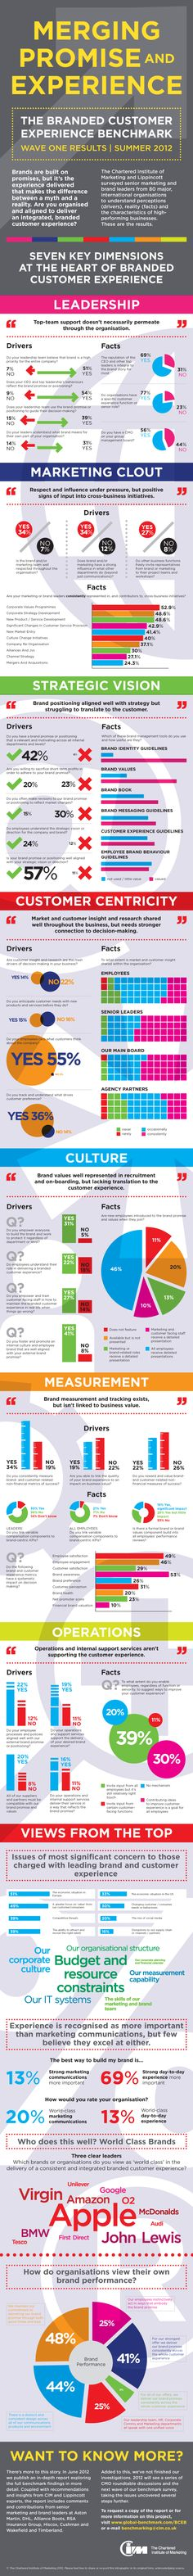 Infographic from CIM - Branded Customer Experience Benchmark wave one results